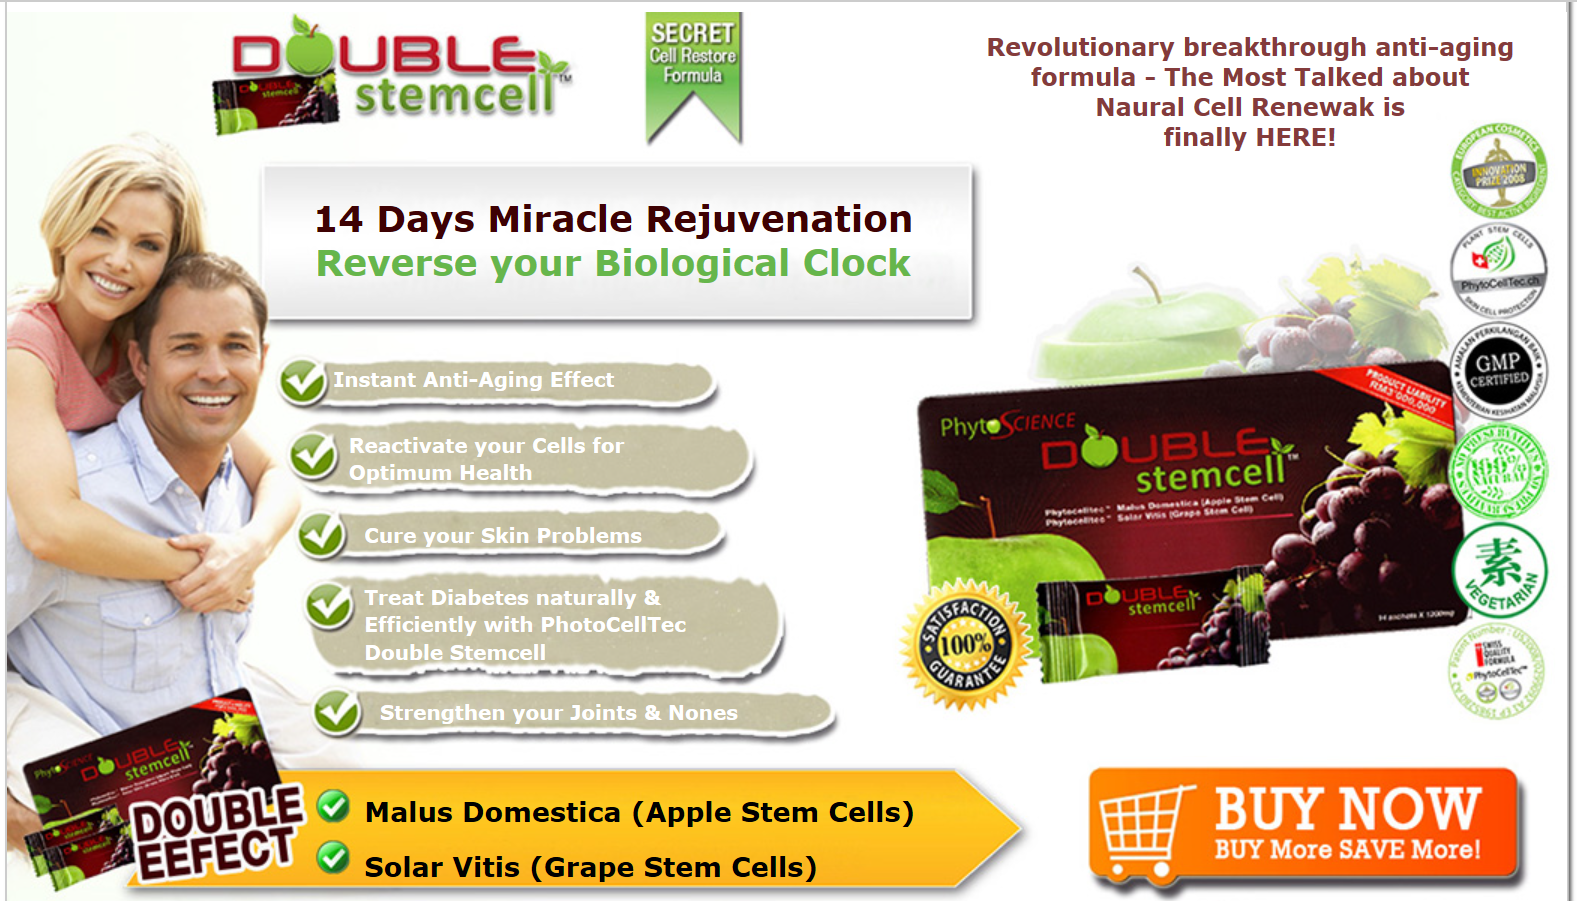 Phytoscience double stemcell anti aging